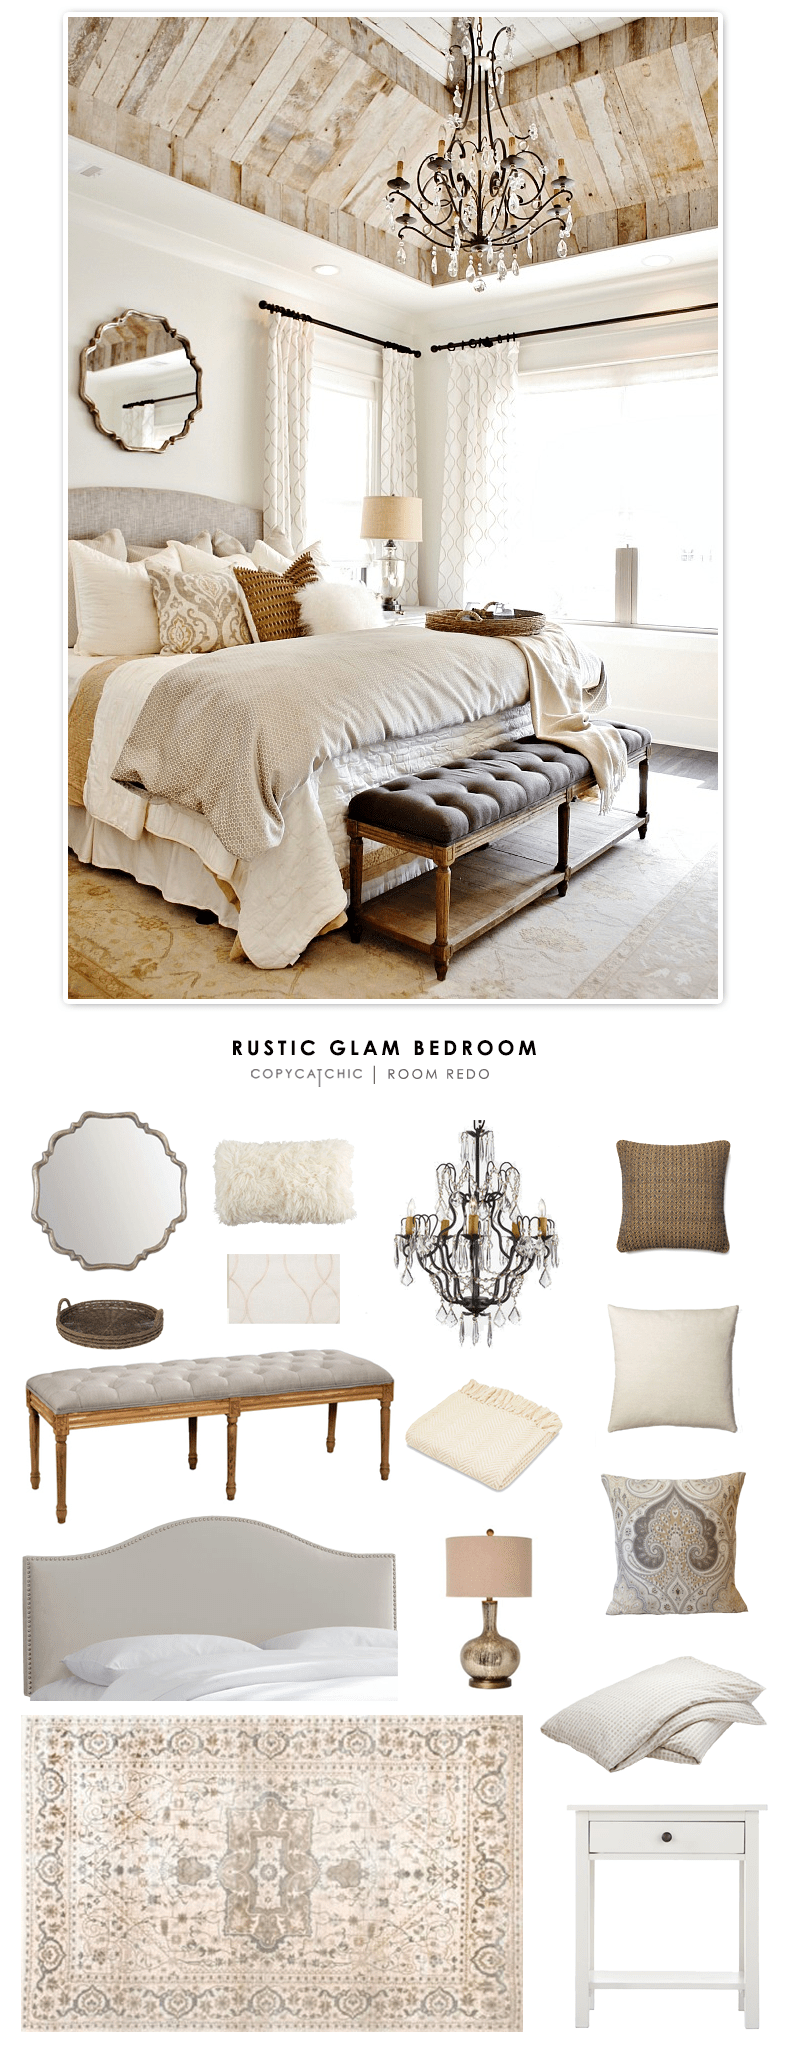 mid century rocking chair nursery queen and king chairs room redo | rustic glam bedroom for less- copycatchic